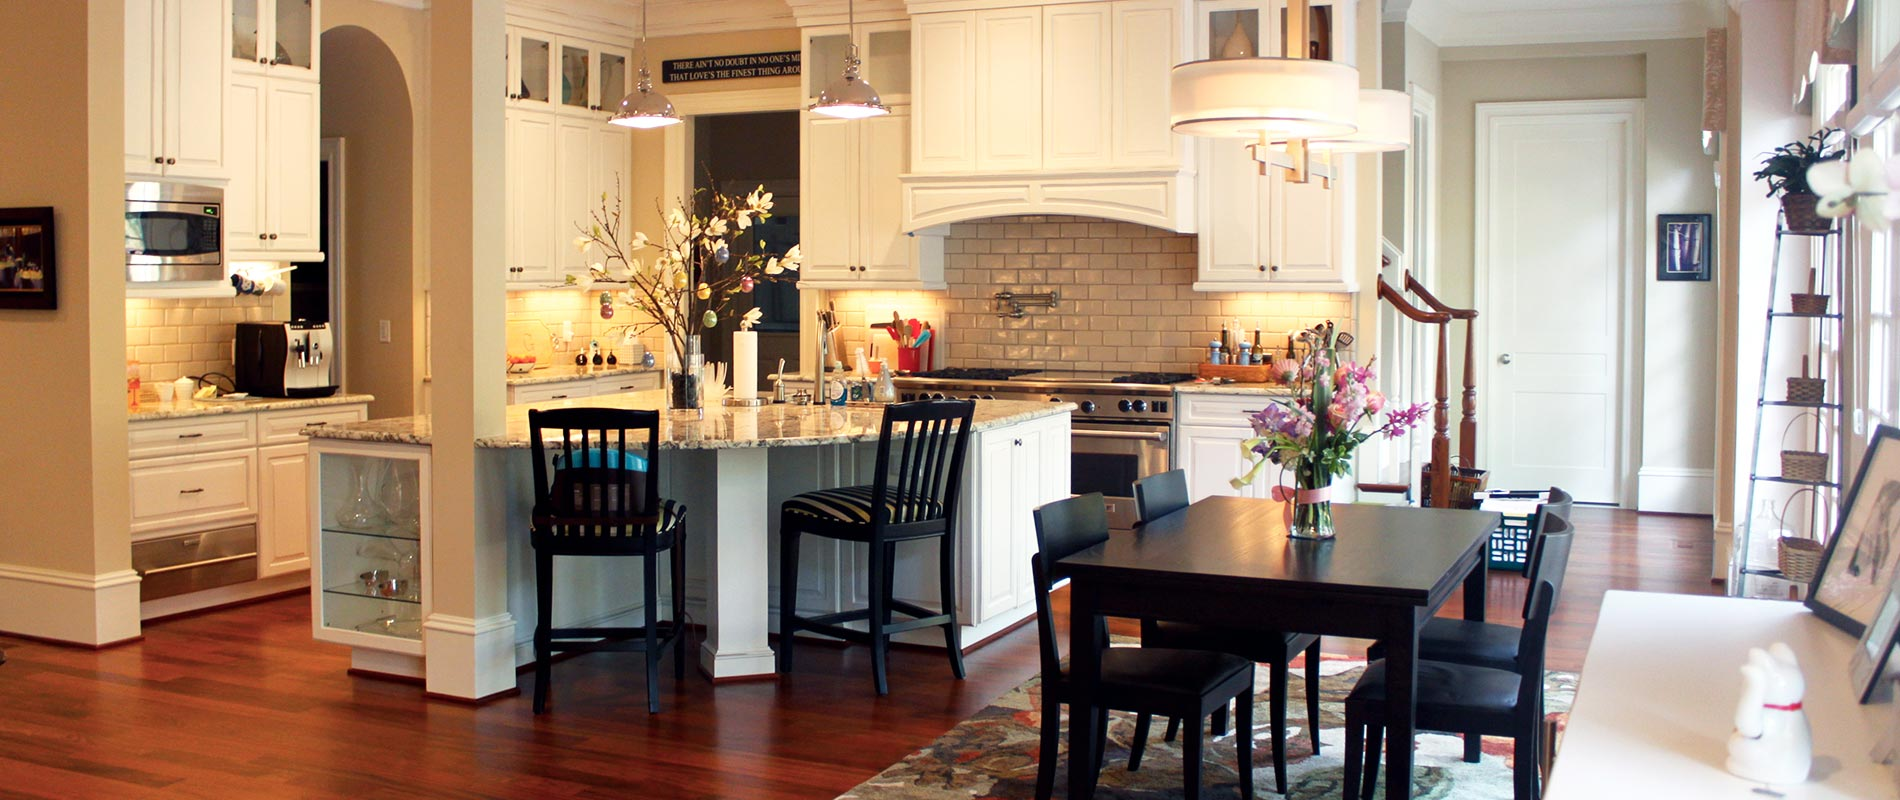 Kitchen Remodel   Complete Construction Company   Raleigh, NC